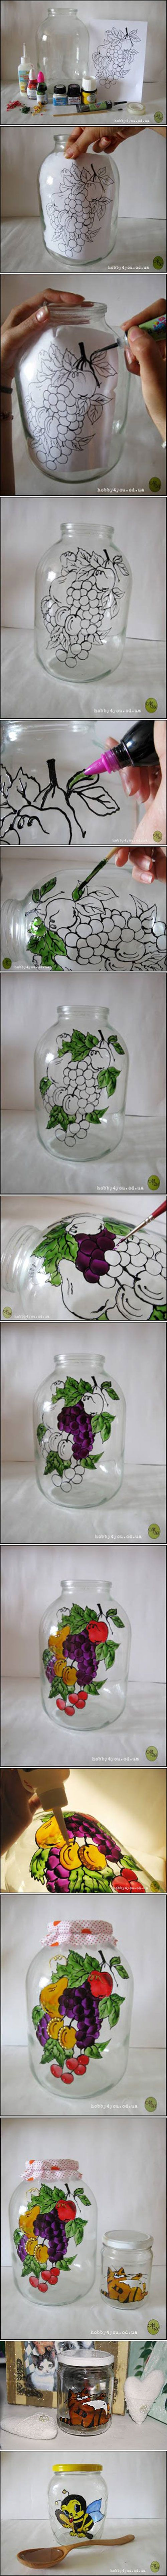 Pittura Su Vetro Tutorial Handmade Picturi Pe Sticla Tutorial Decoupage Co Pinterest